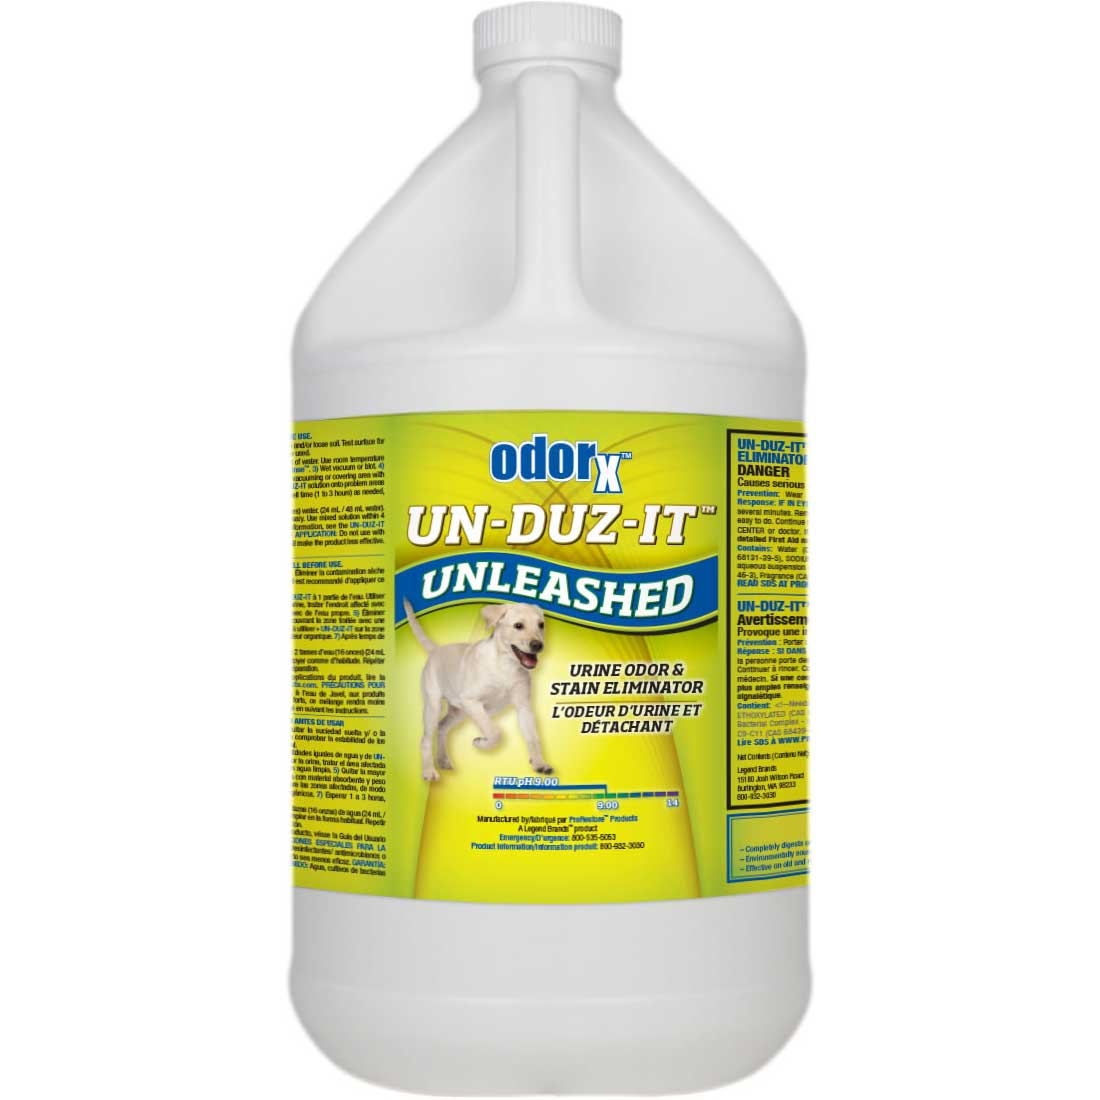 OdorX Un-Duz-It Unleashed 433162000 Urine Odor and Stain Eliminator Gallon [847136002405] Un-Leashed Legend Brands